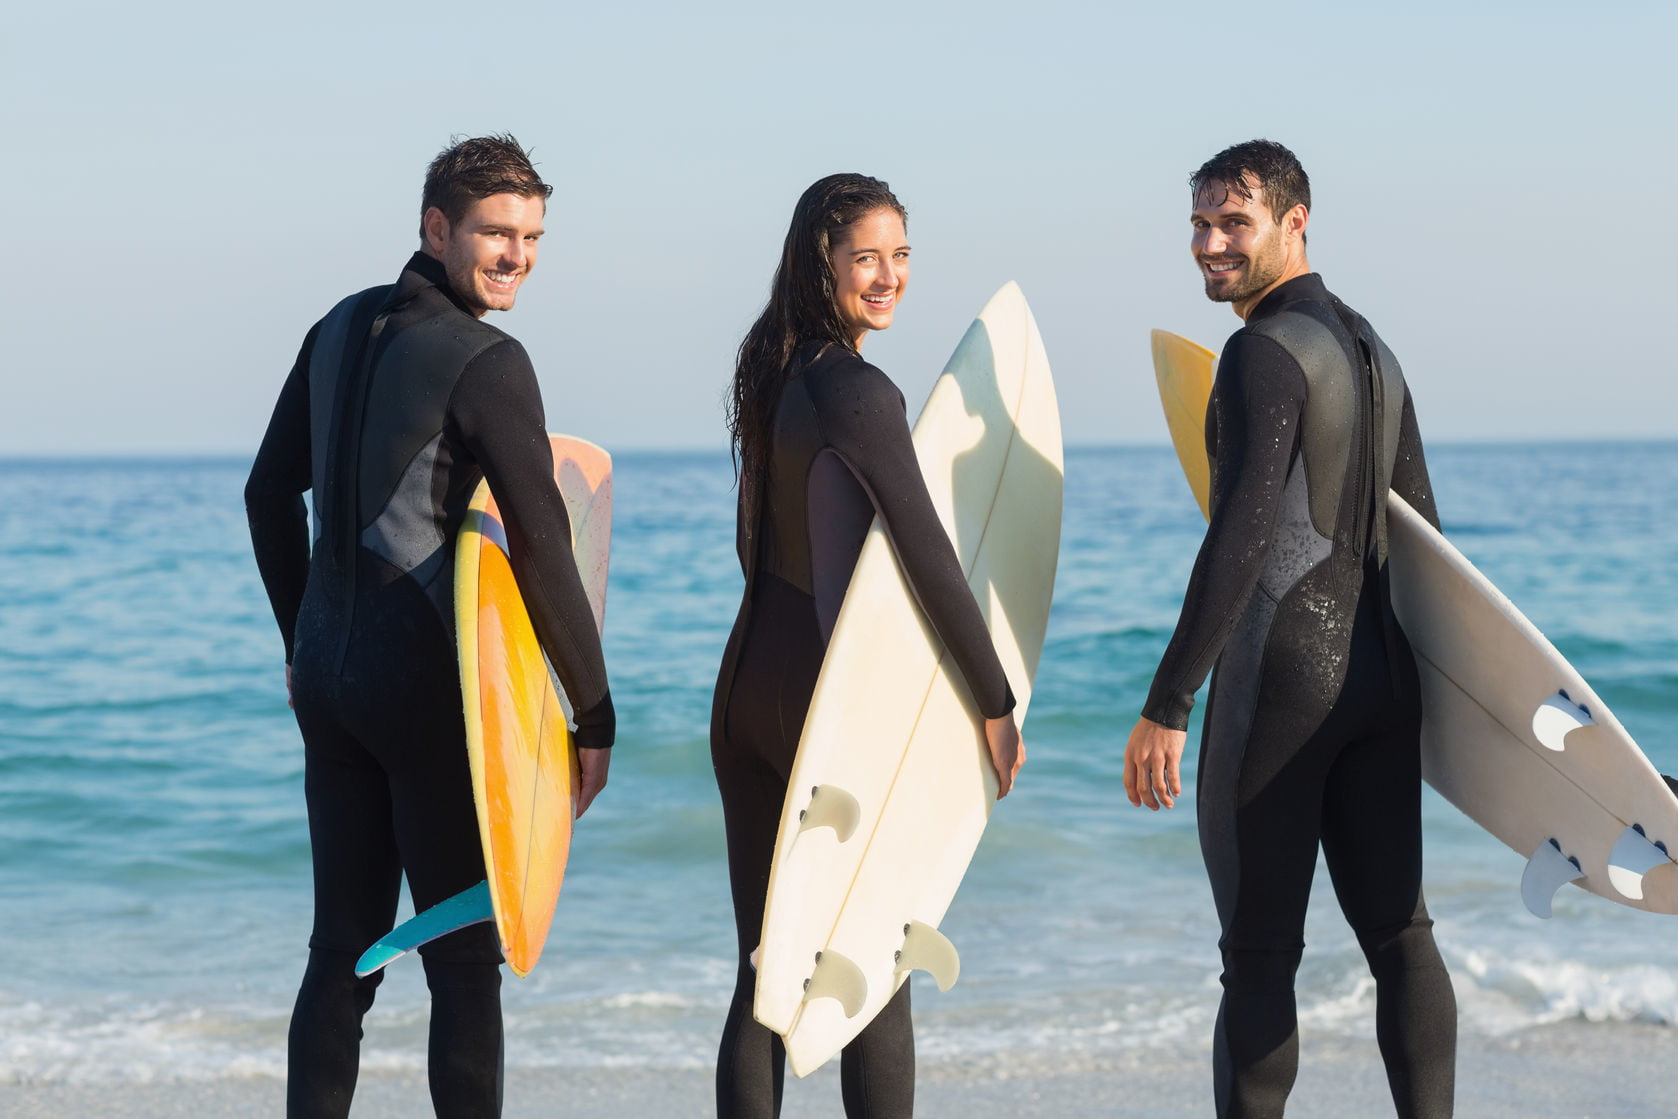 two-men-one-woman-surfboards-wetsuits